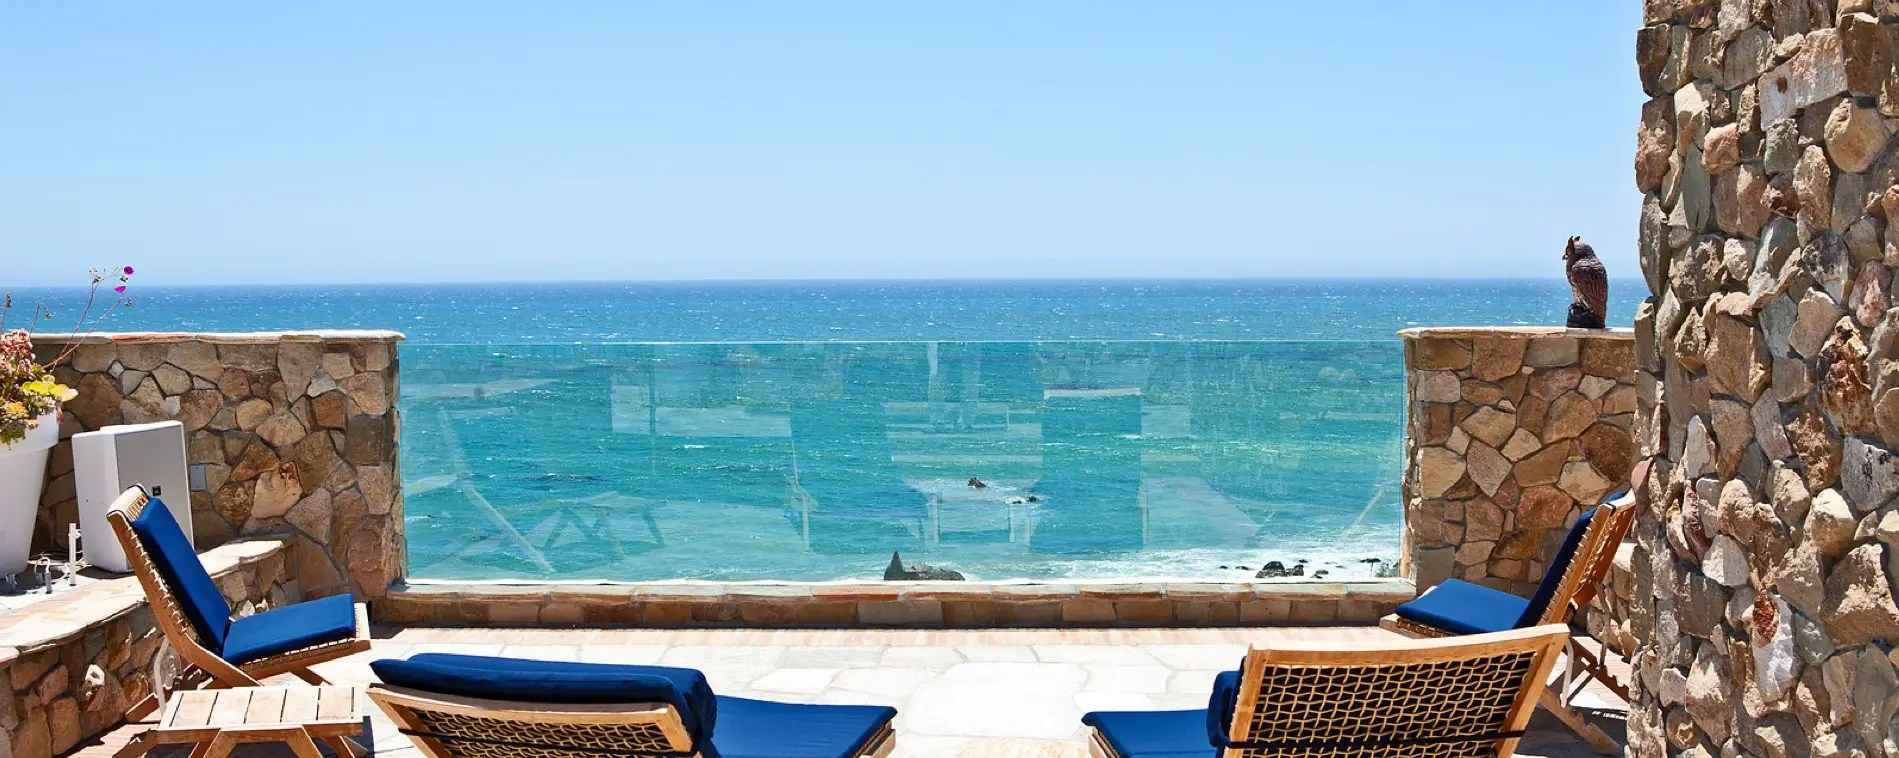 Enjoy some down time on the patio, the view is just one of the perks that comes with buying a $26 million home.